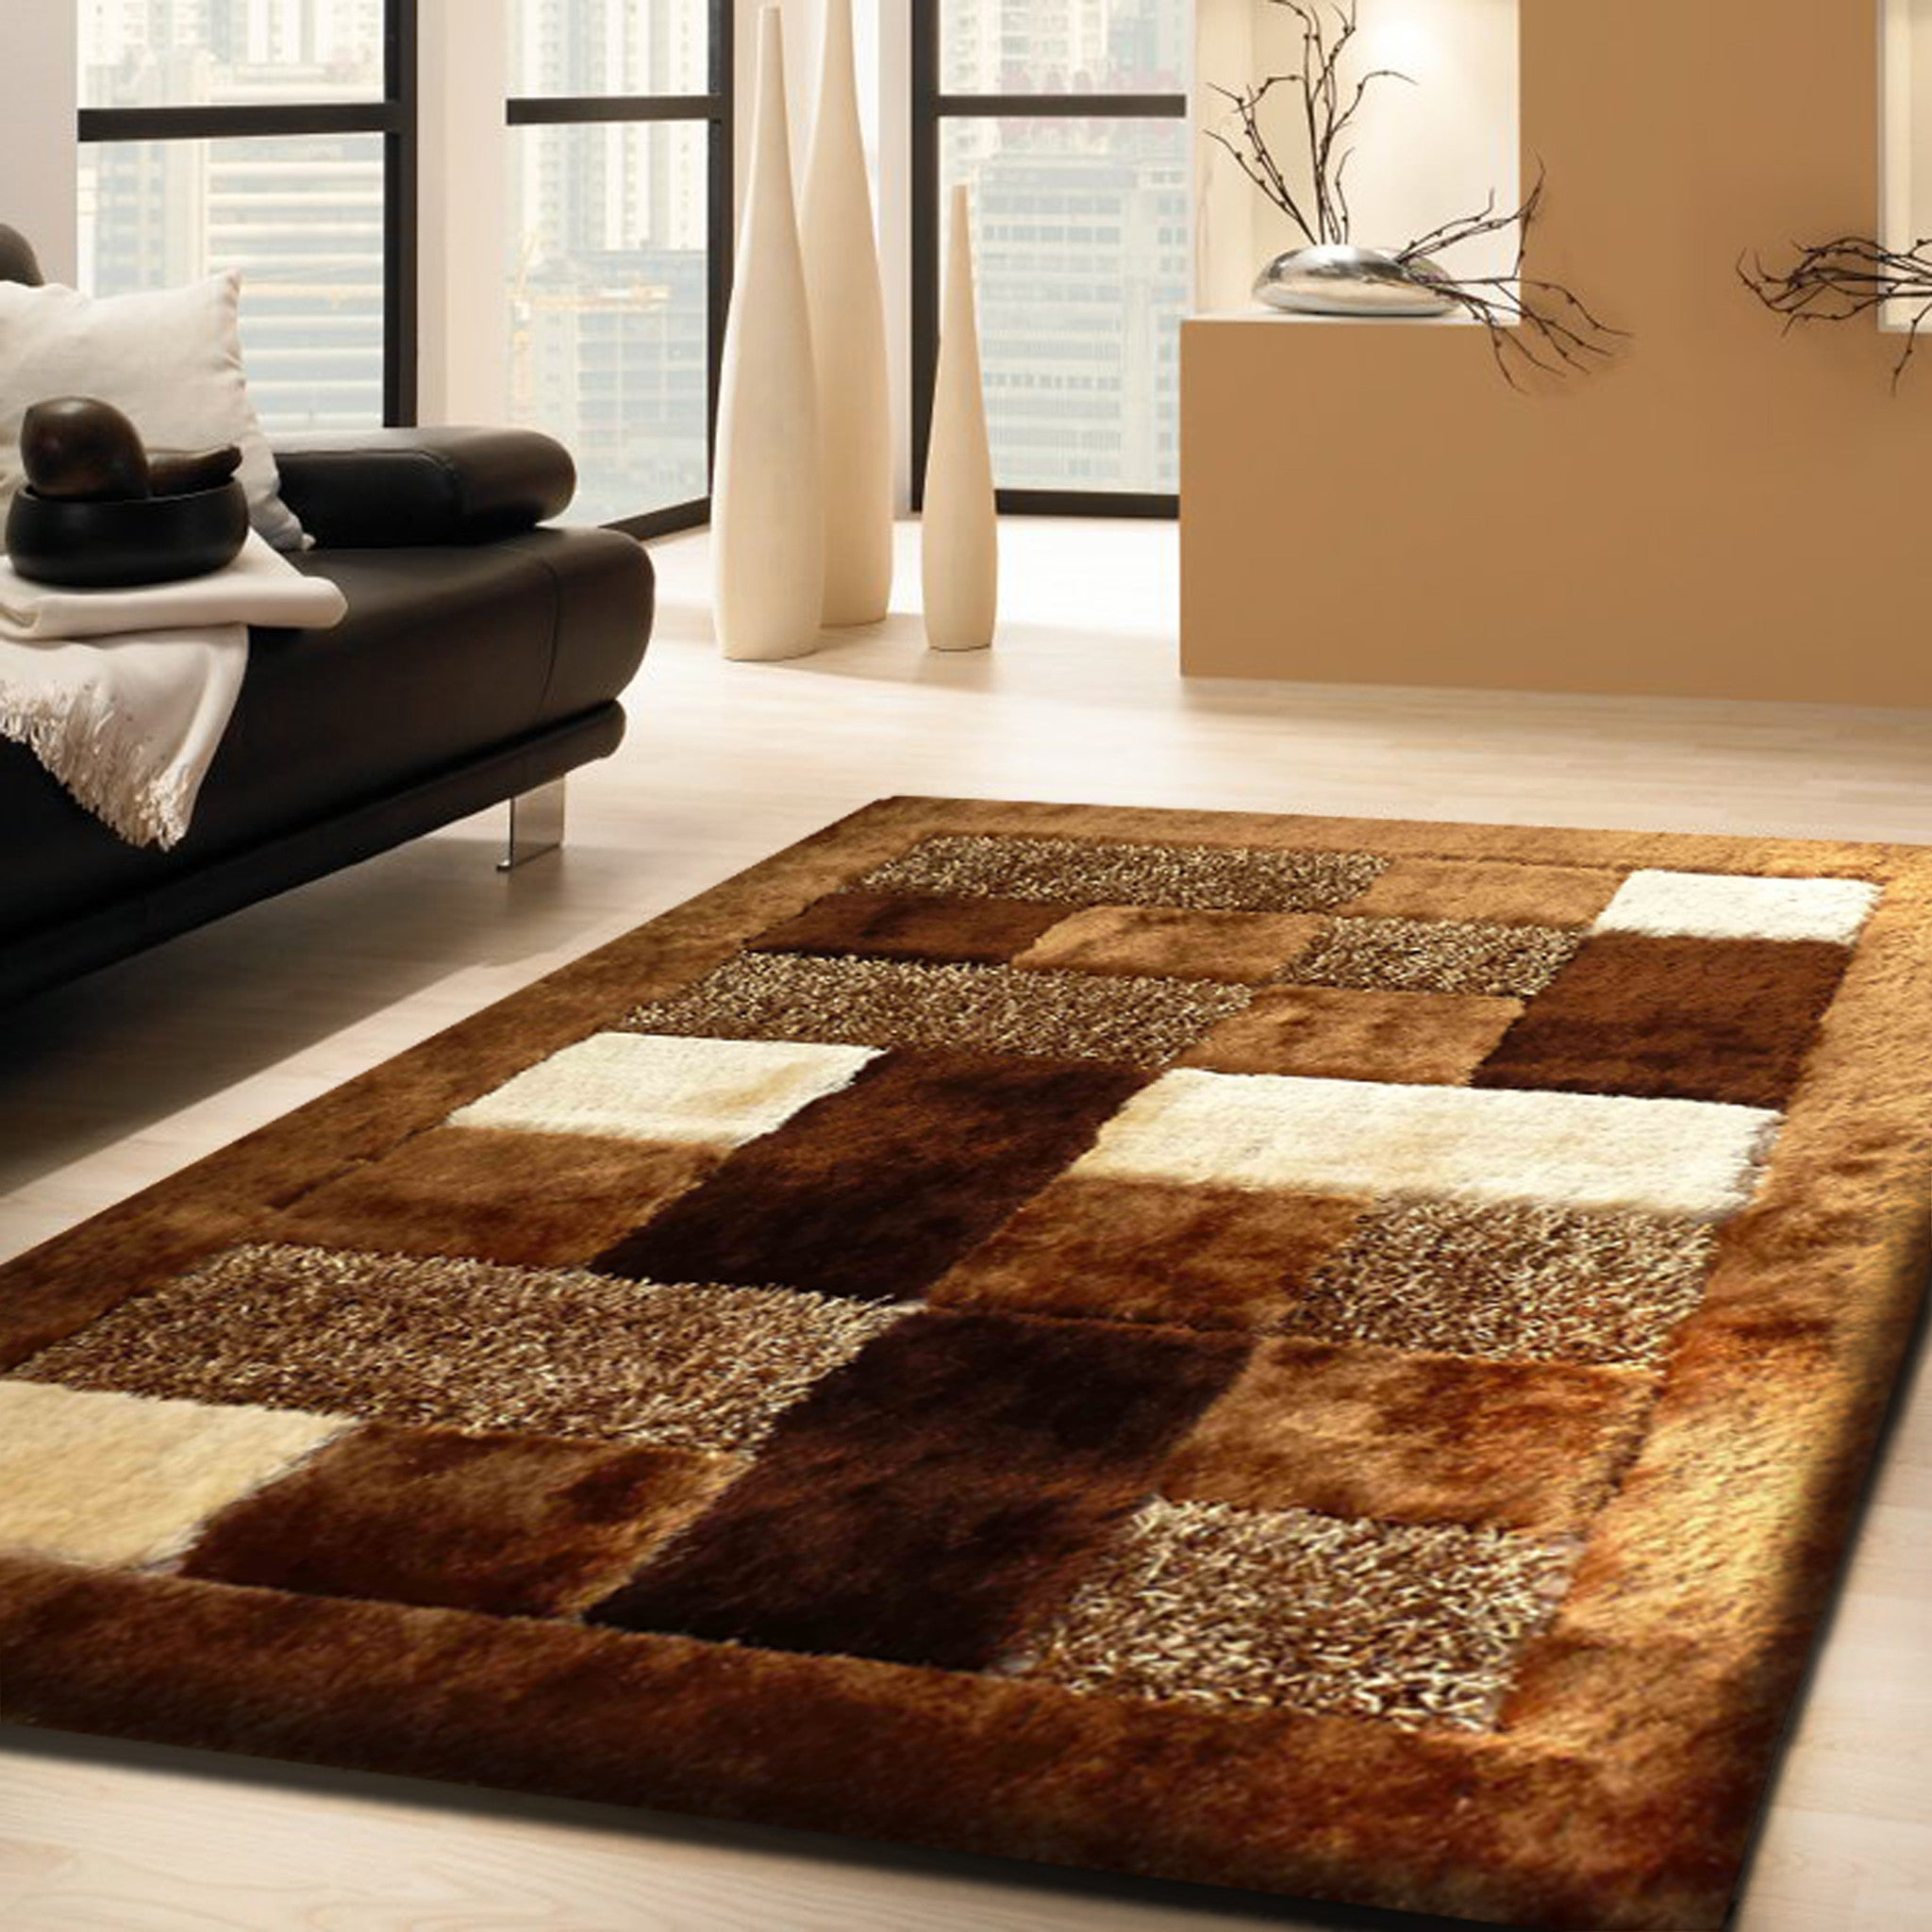 Brown Shaggy Hand Tufted Area Rug By Rug Addiction